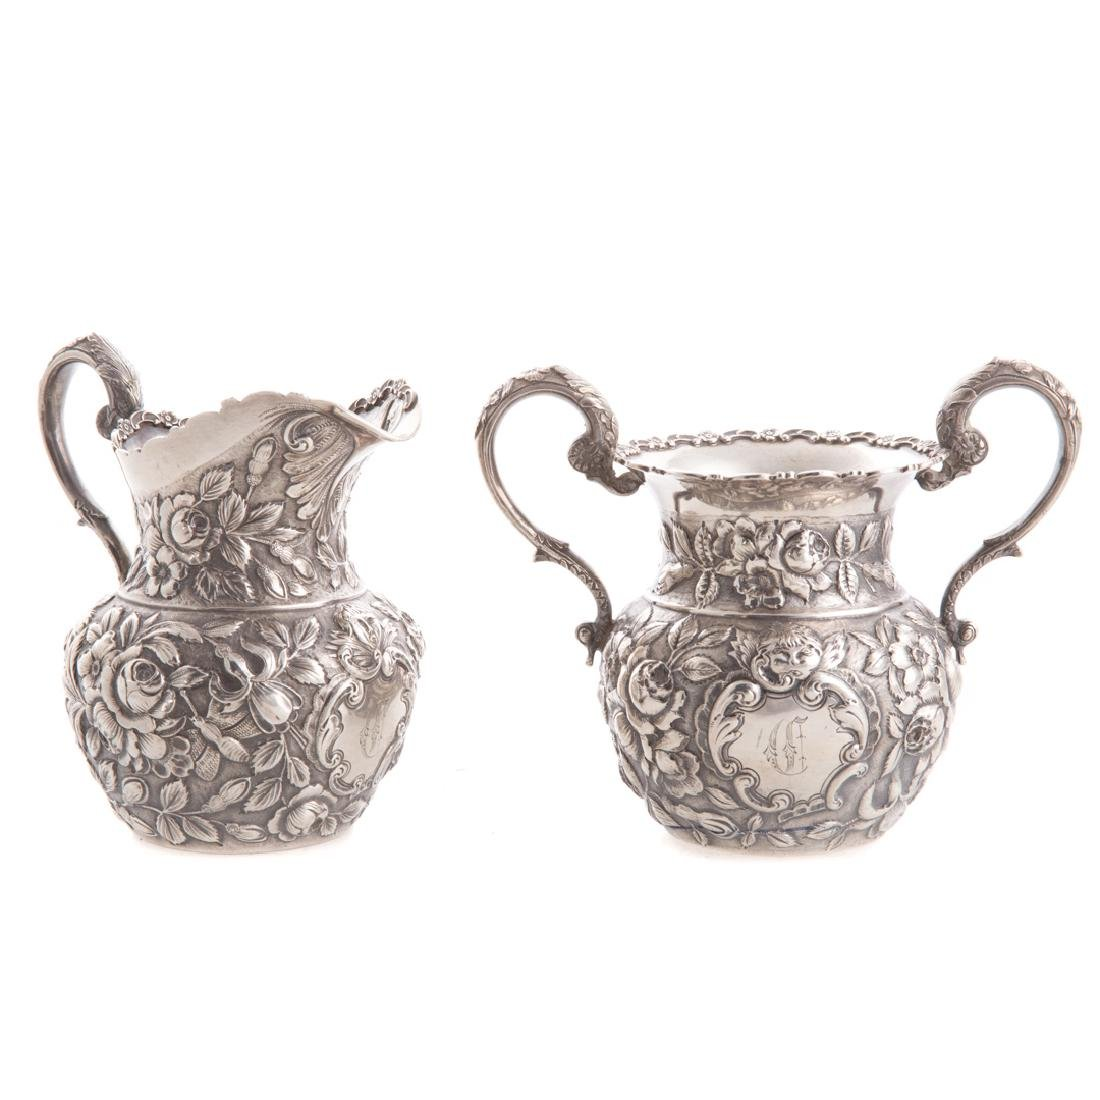 Quality repousse sterling 6-pc coffee/tea service - 7